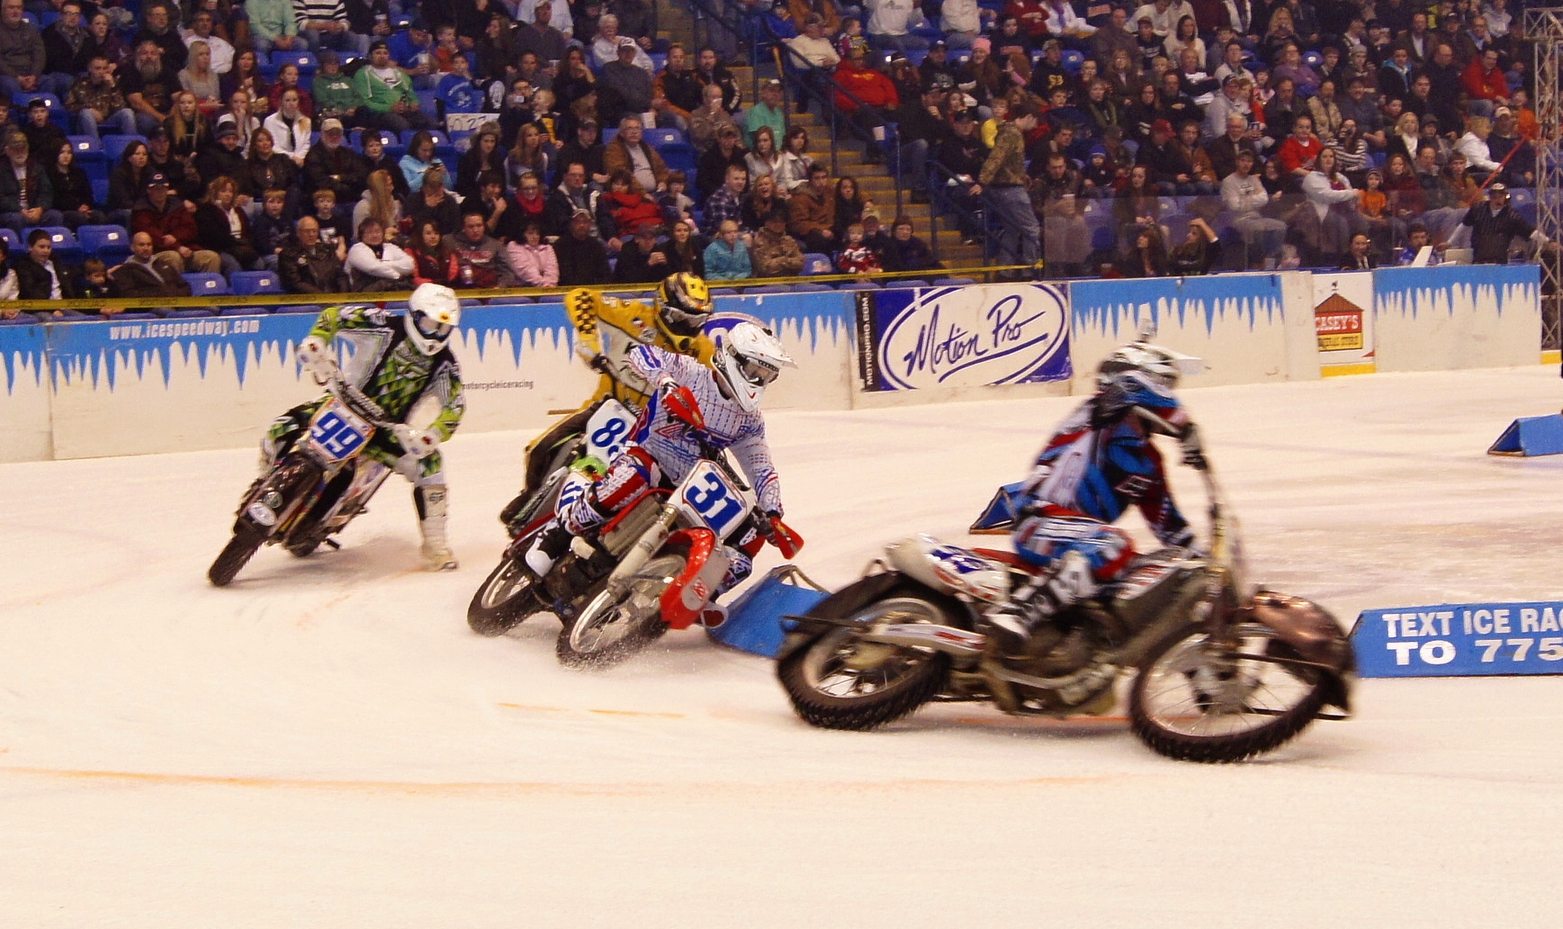 Honda Bloomington Il >> Stu's Shots R Us: ICE Speedway 2012 Round 4 Round-Up From 'The Big One' in Bloomington, IL.